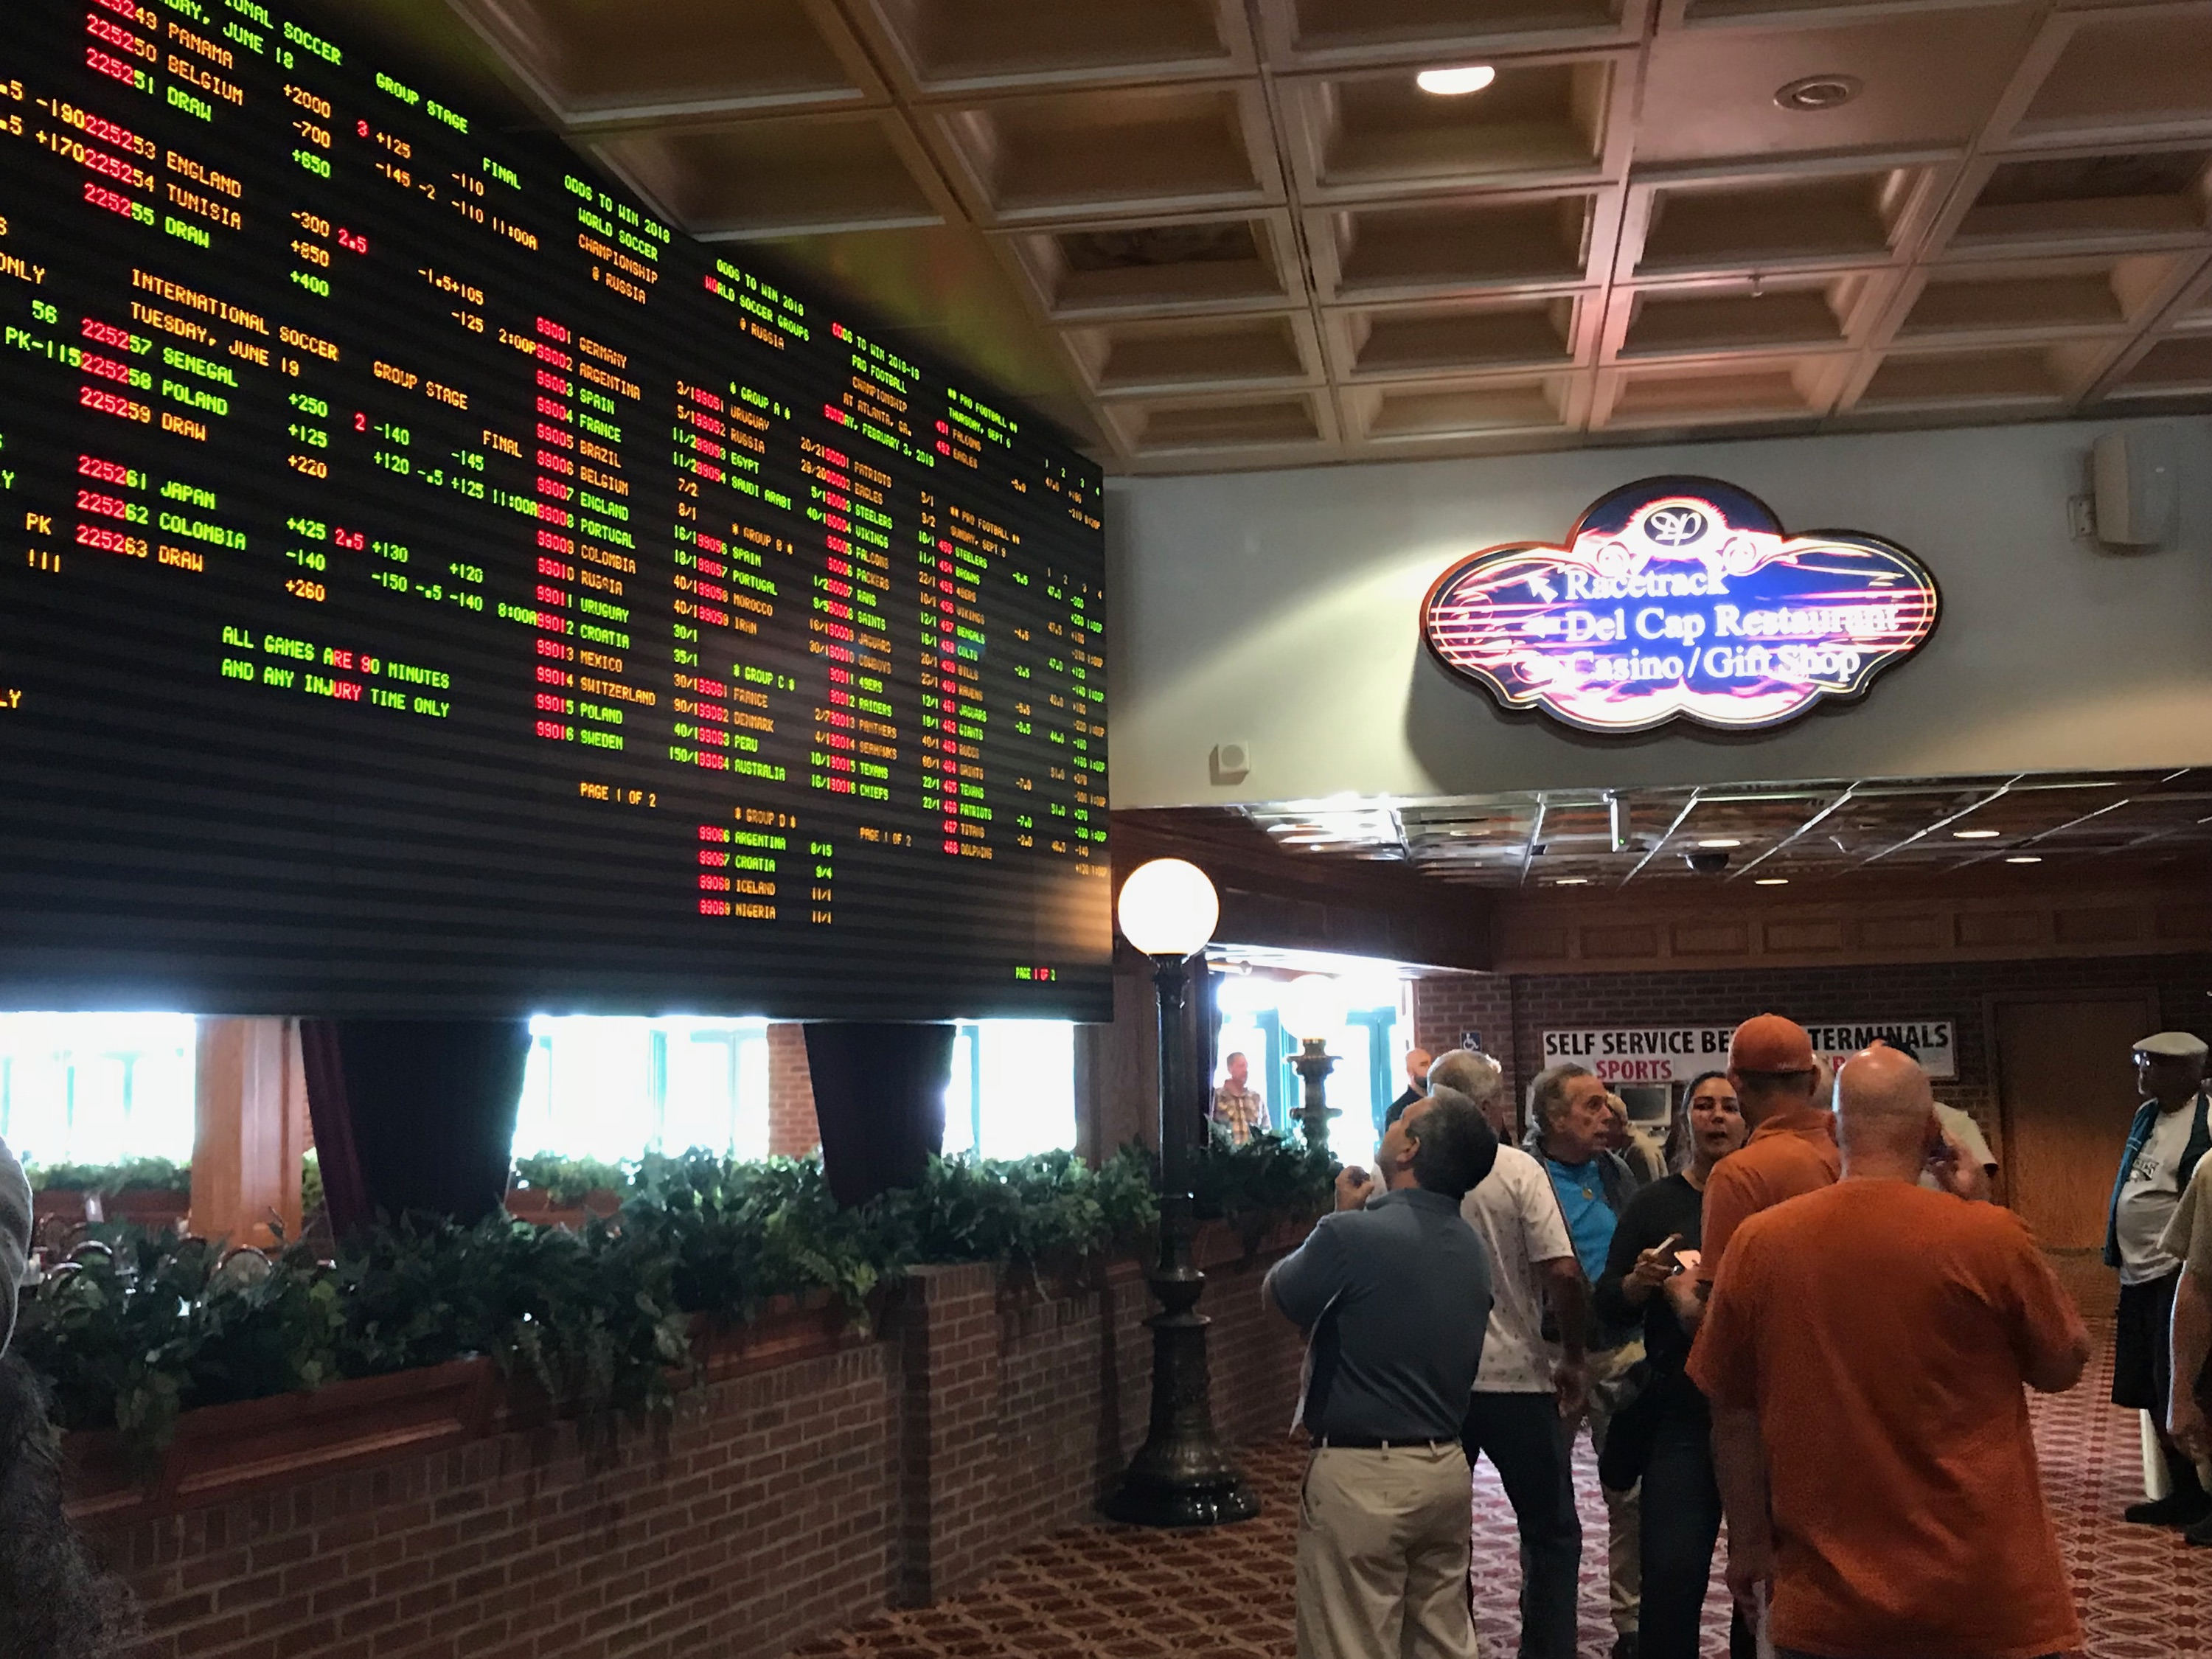 Delaware park sports betting addressing new jersey lawsuit sports betting